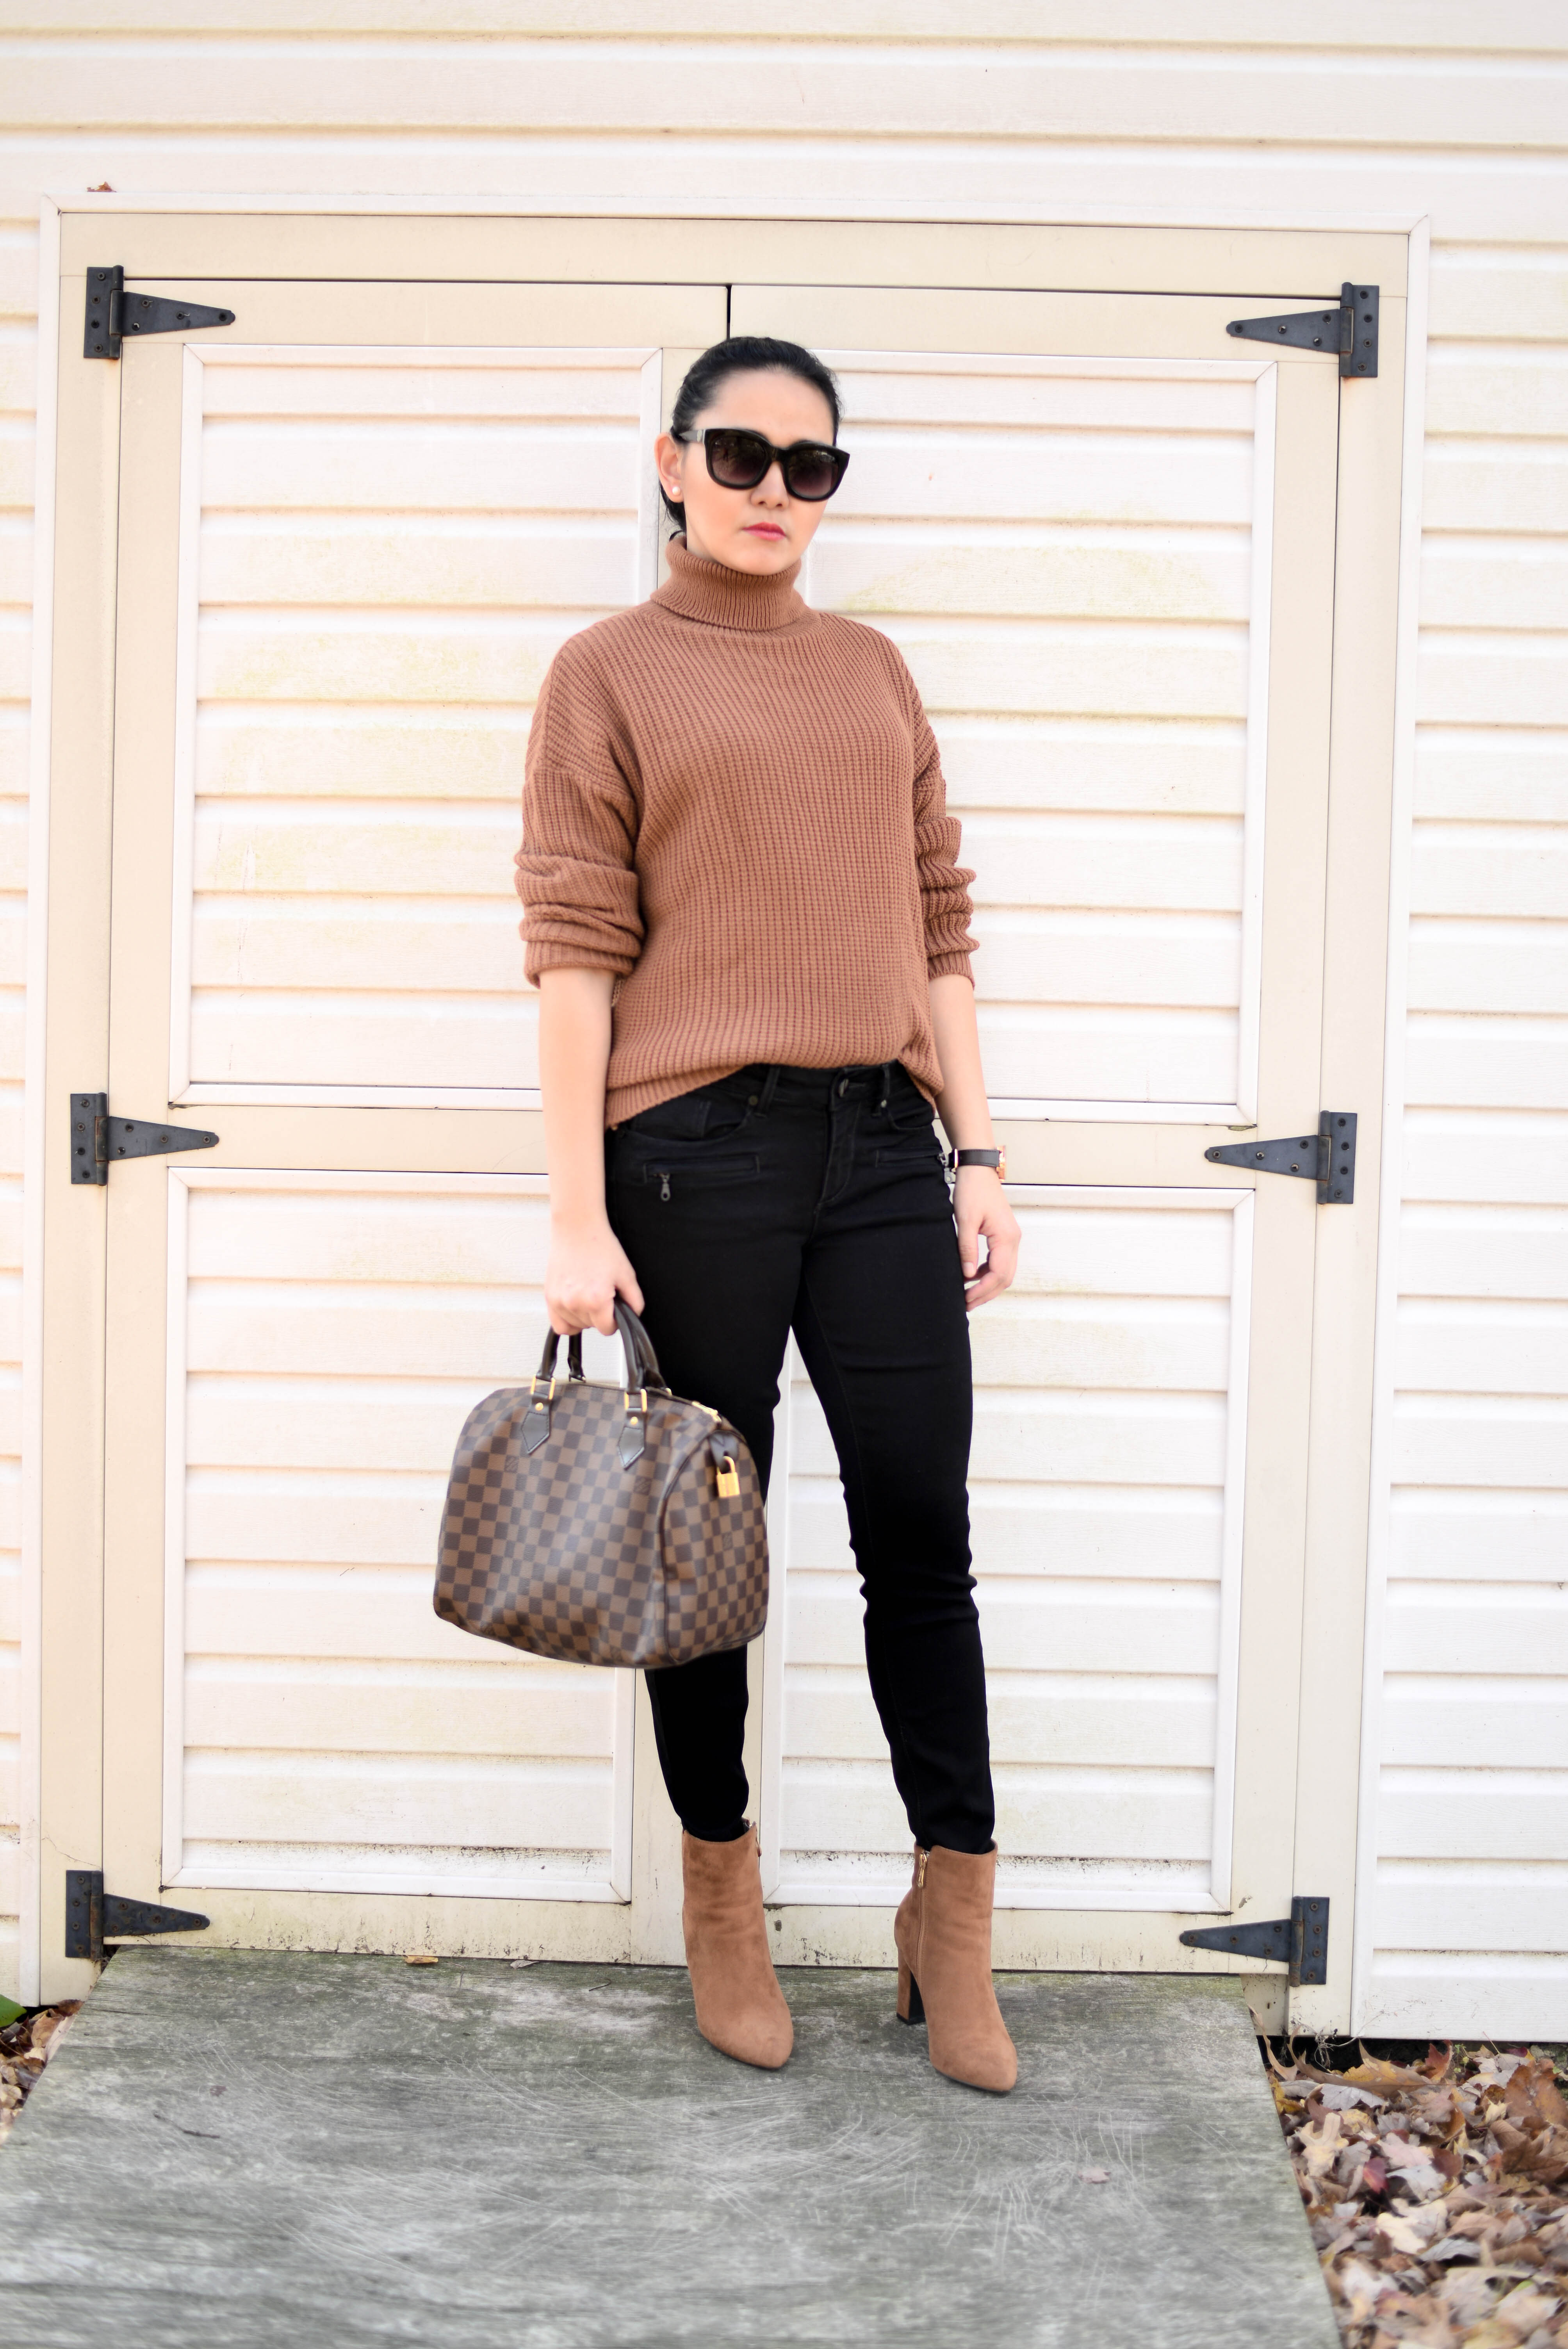 How to Wear an Oversized Turtleneck Sweater that will Not Make You look Bigger